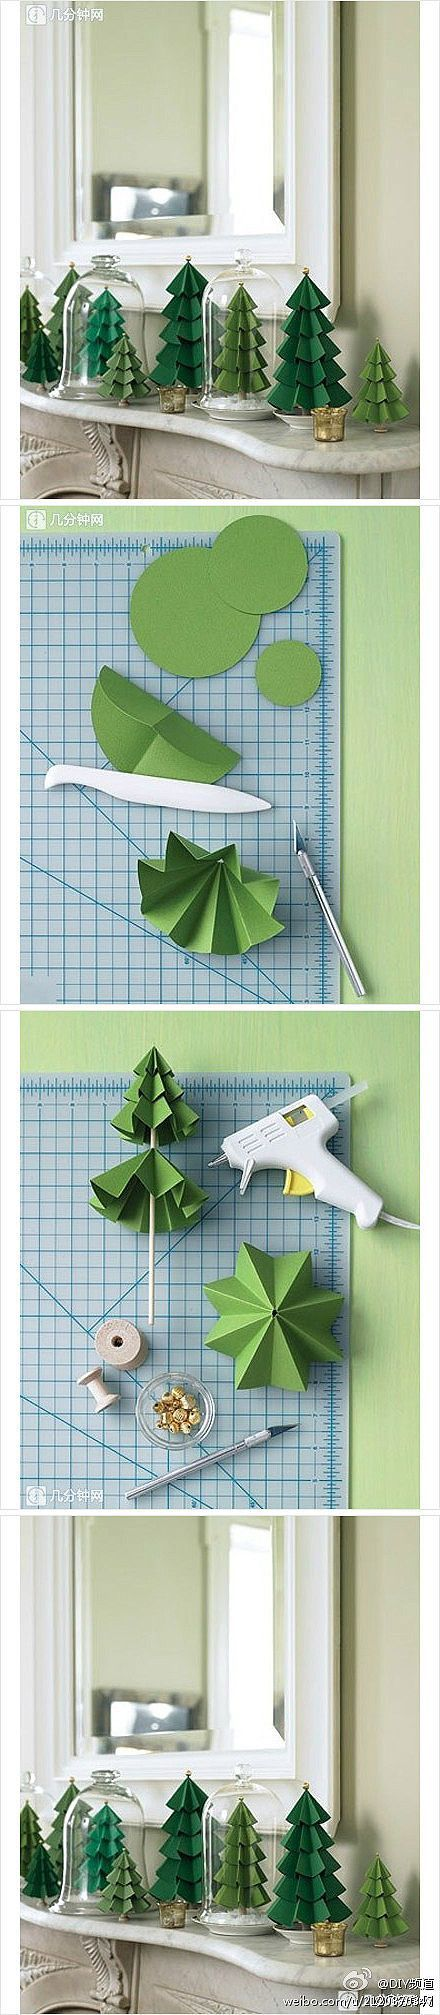 How to make paper craft Christmas trees step by step DIY tutorial instructions::